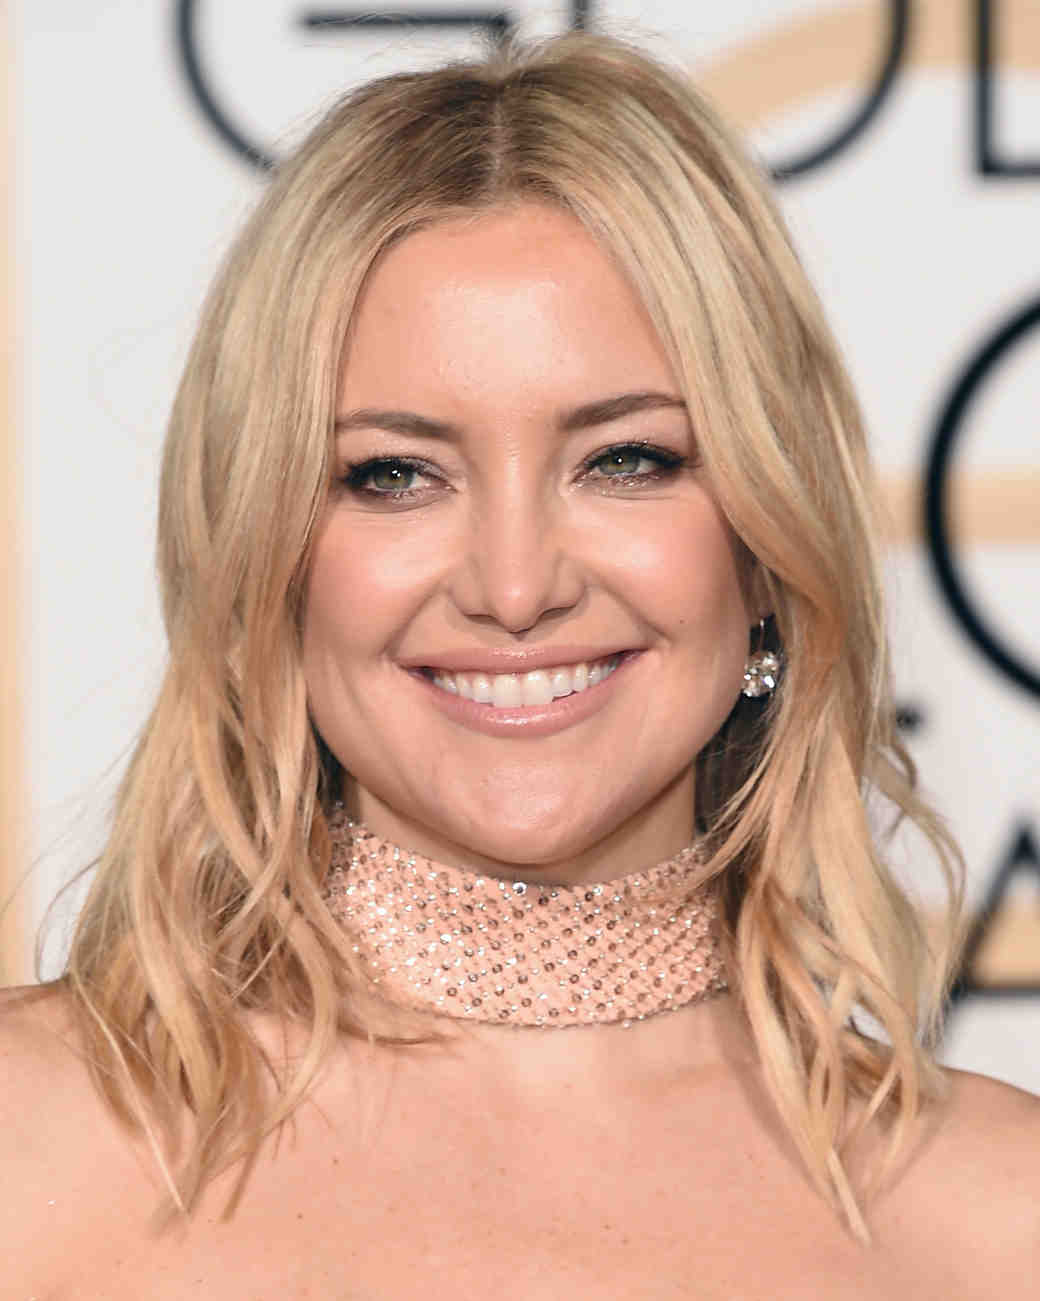 golden-globes-2016-makeup-looks-kate-hudson-0116.jpg